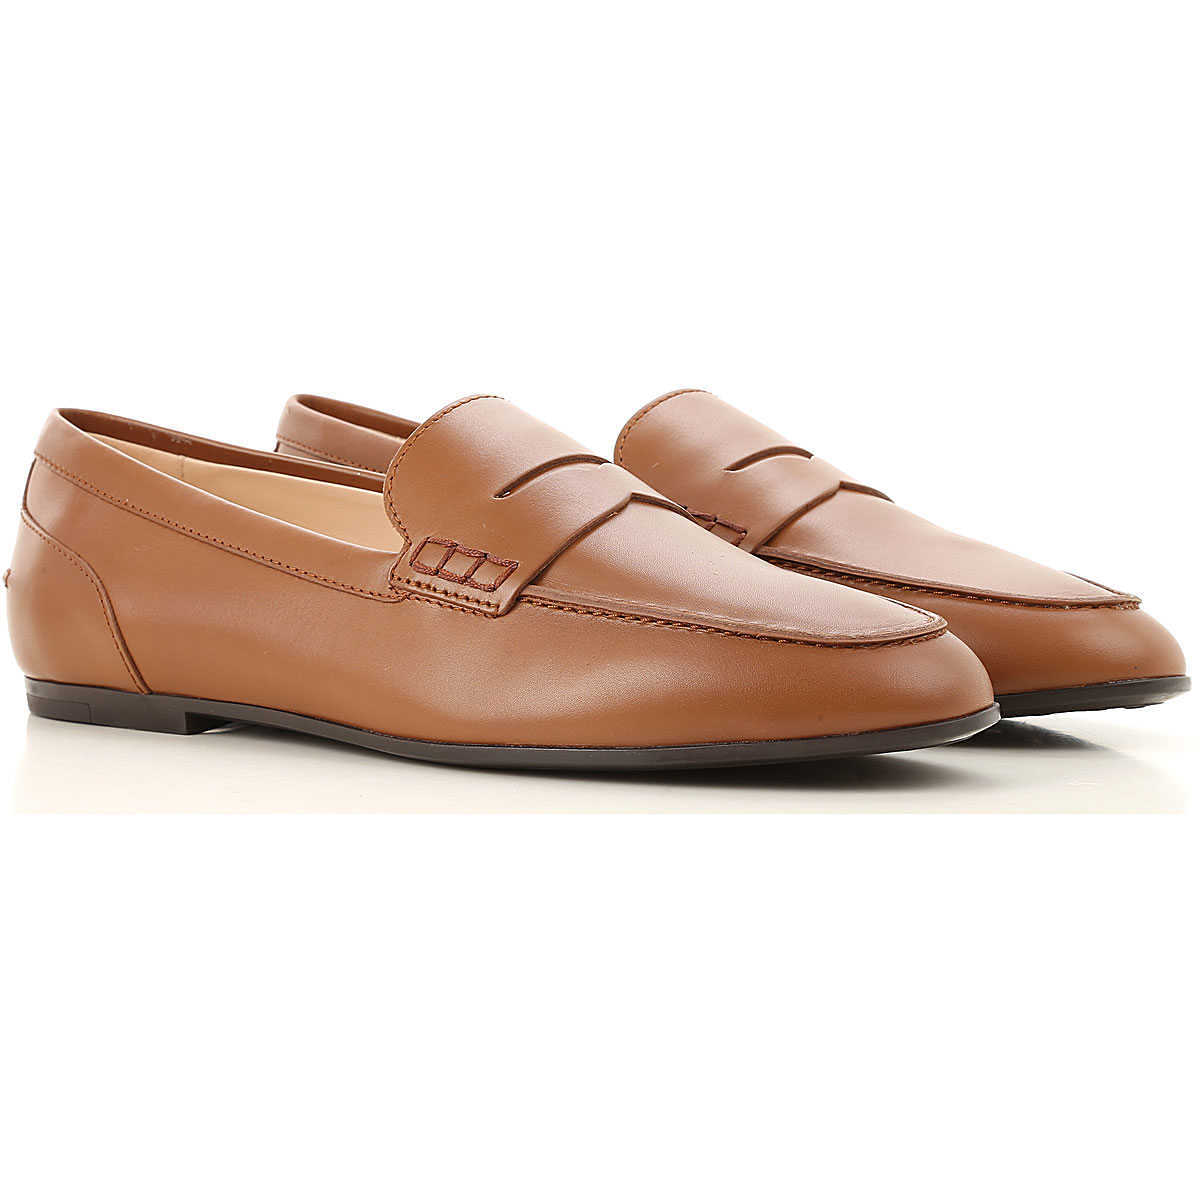 Tods Loafers for Women Brandy UK - GOOFASH